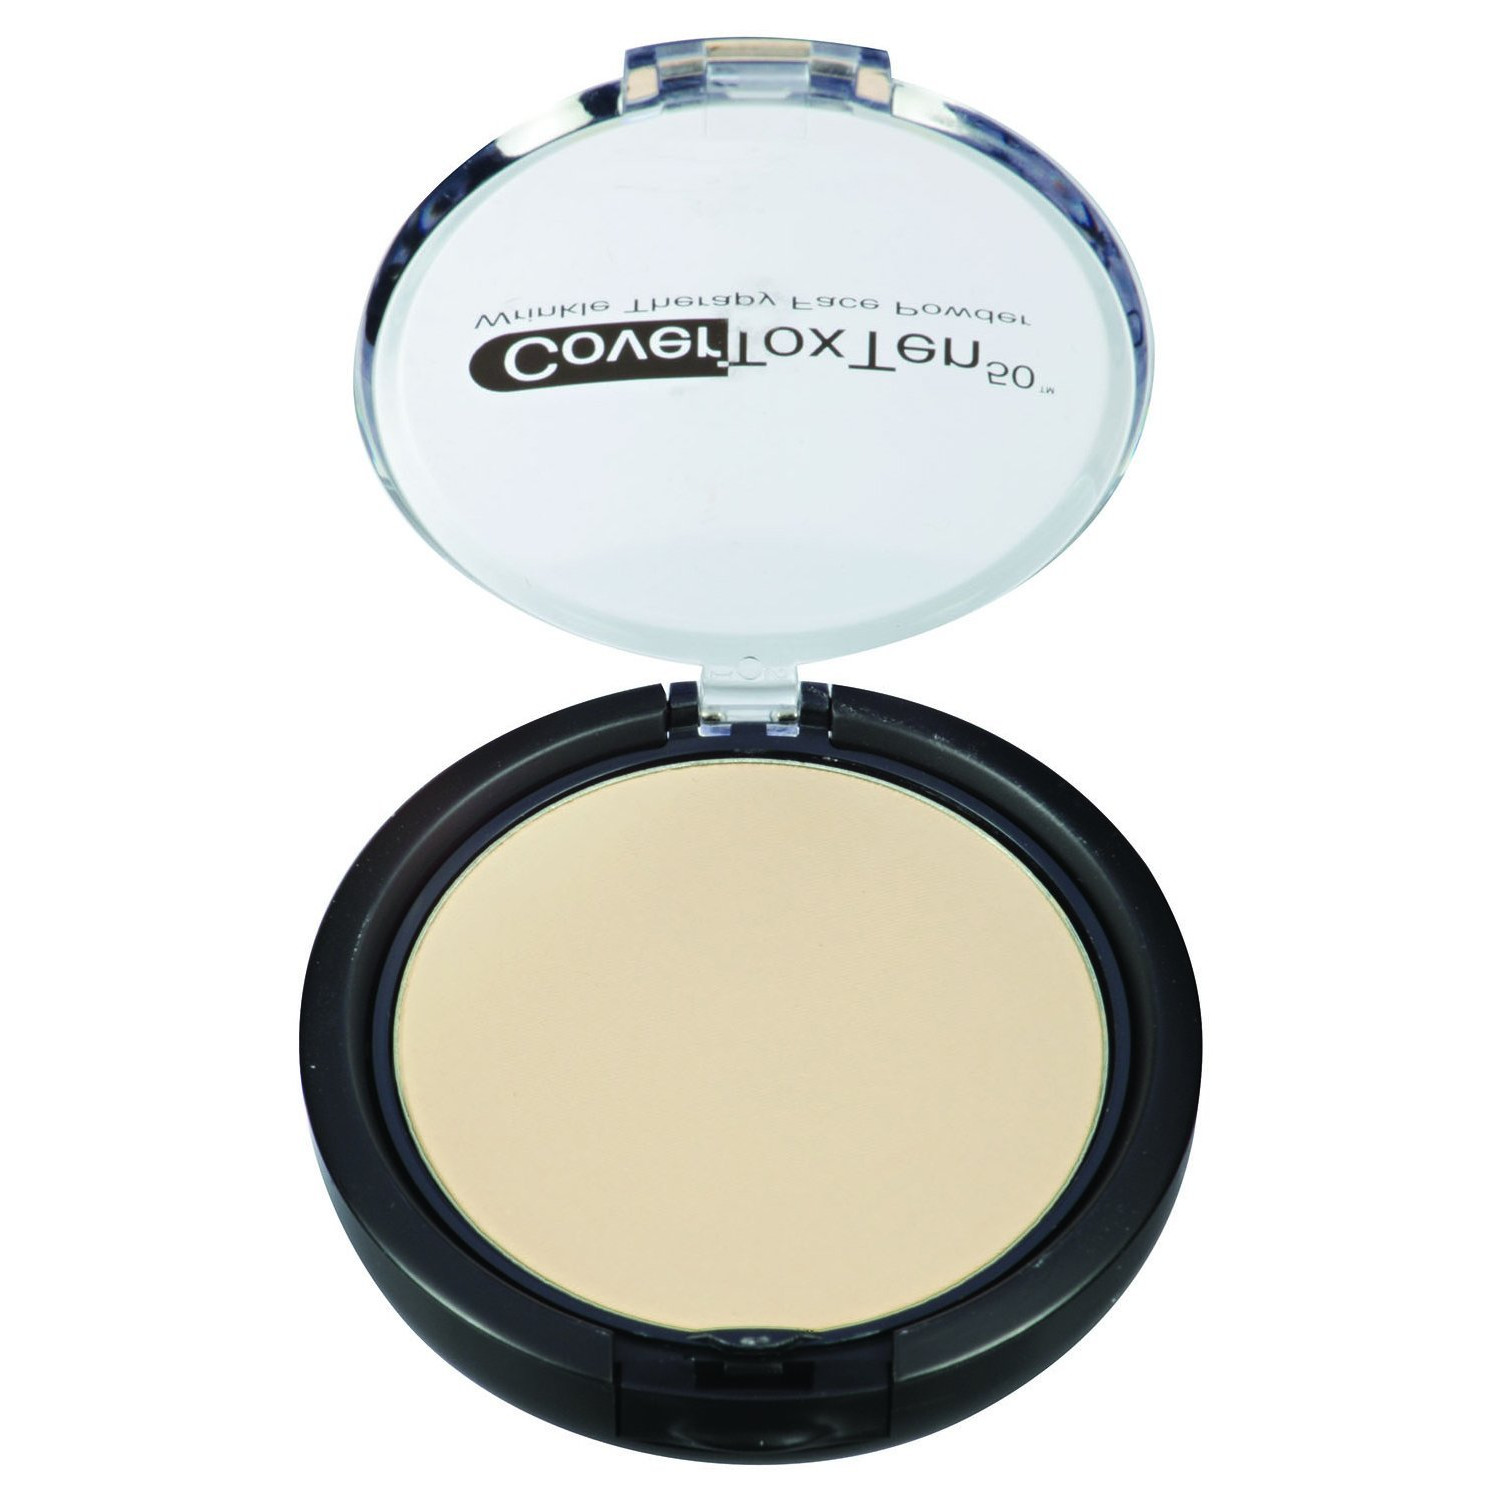 Physicians Formula Covertoxten™ Wrinkle Therapy Face Powder - Translucent Light